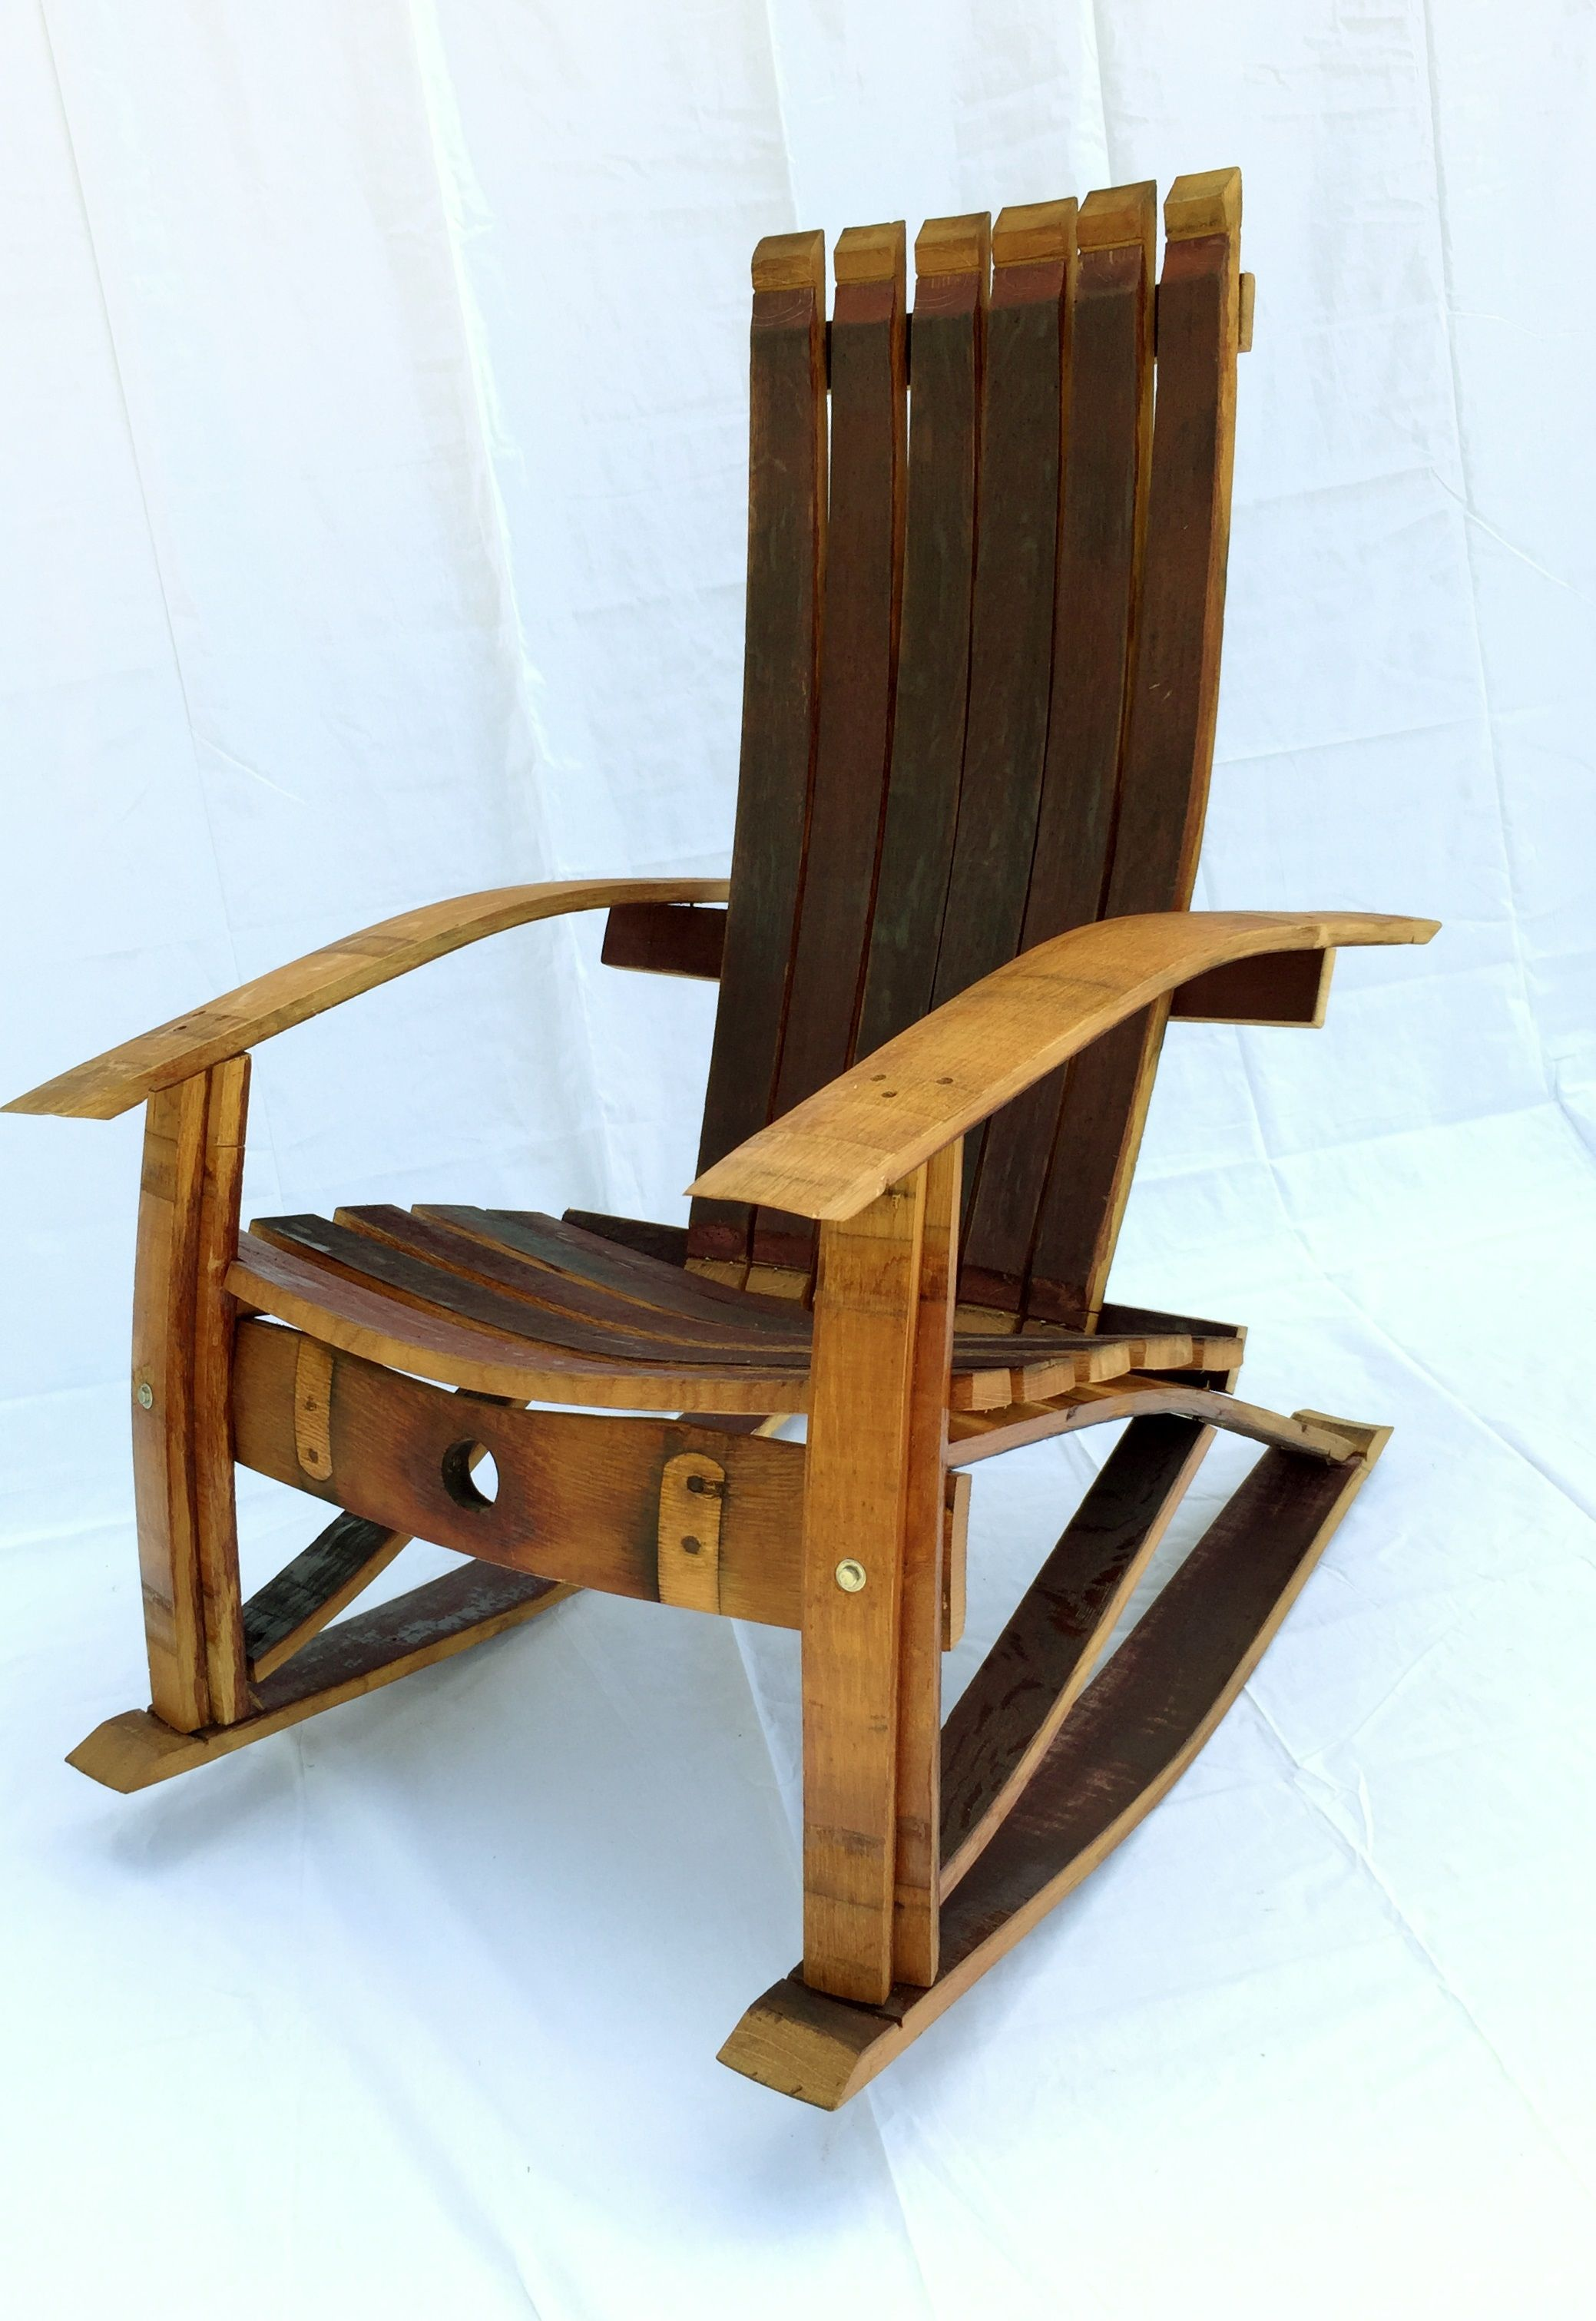 DIY Wine Barrel Rocking Chair Wood Plans. Very simple to